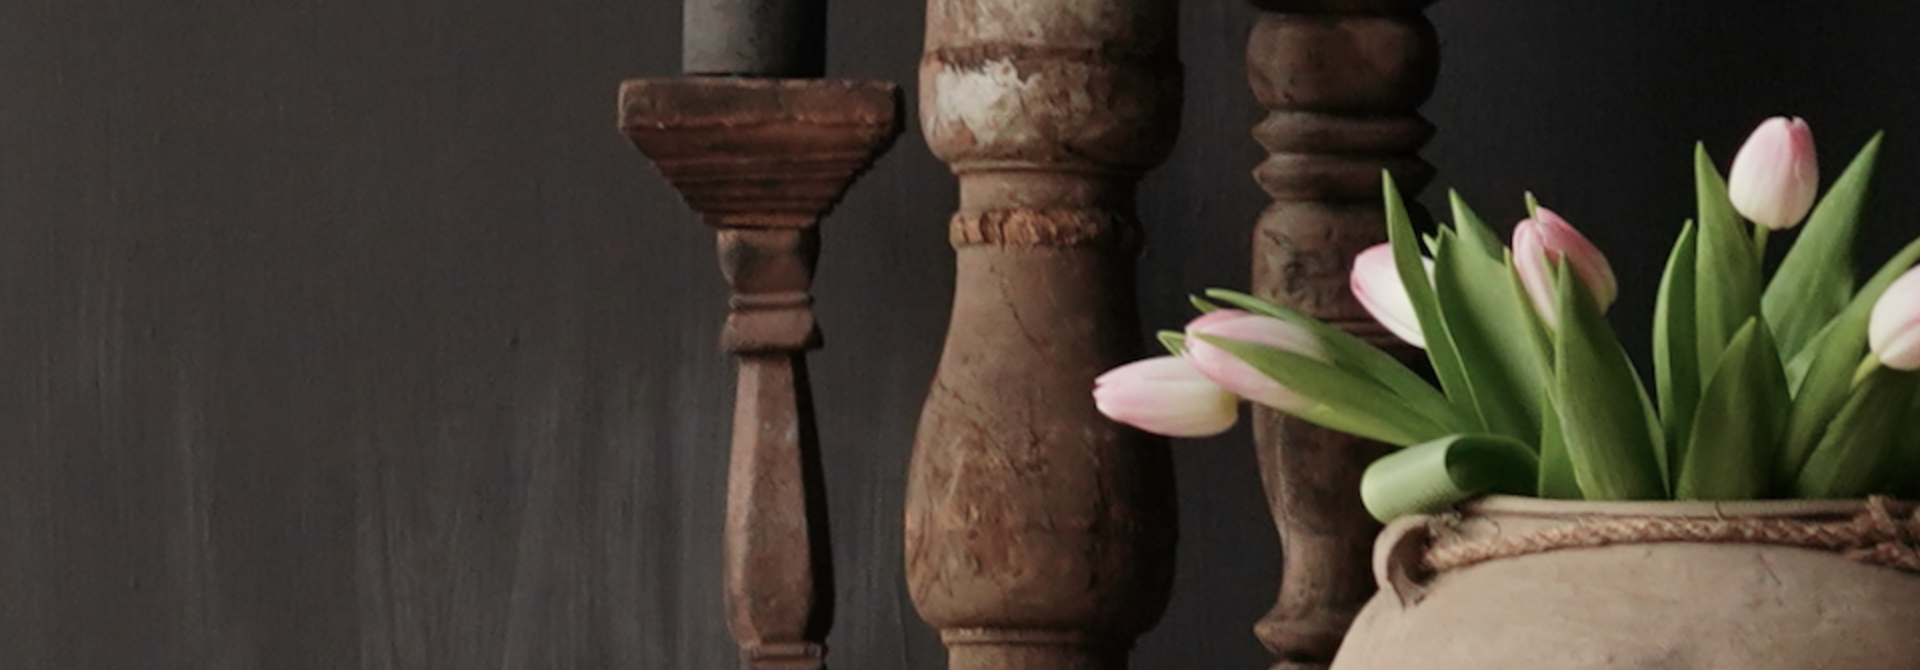 Wooden Nepalese candlestick made of old ornament